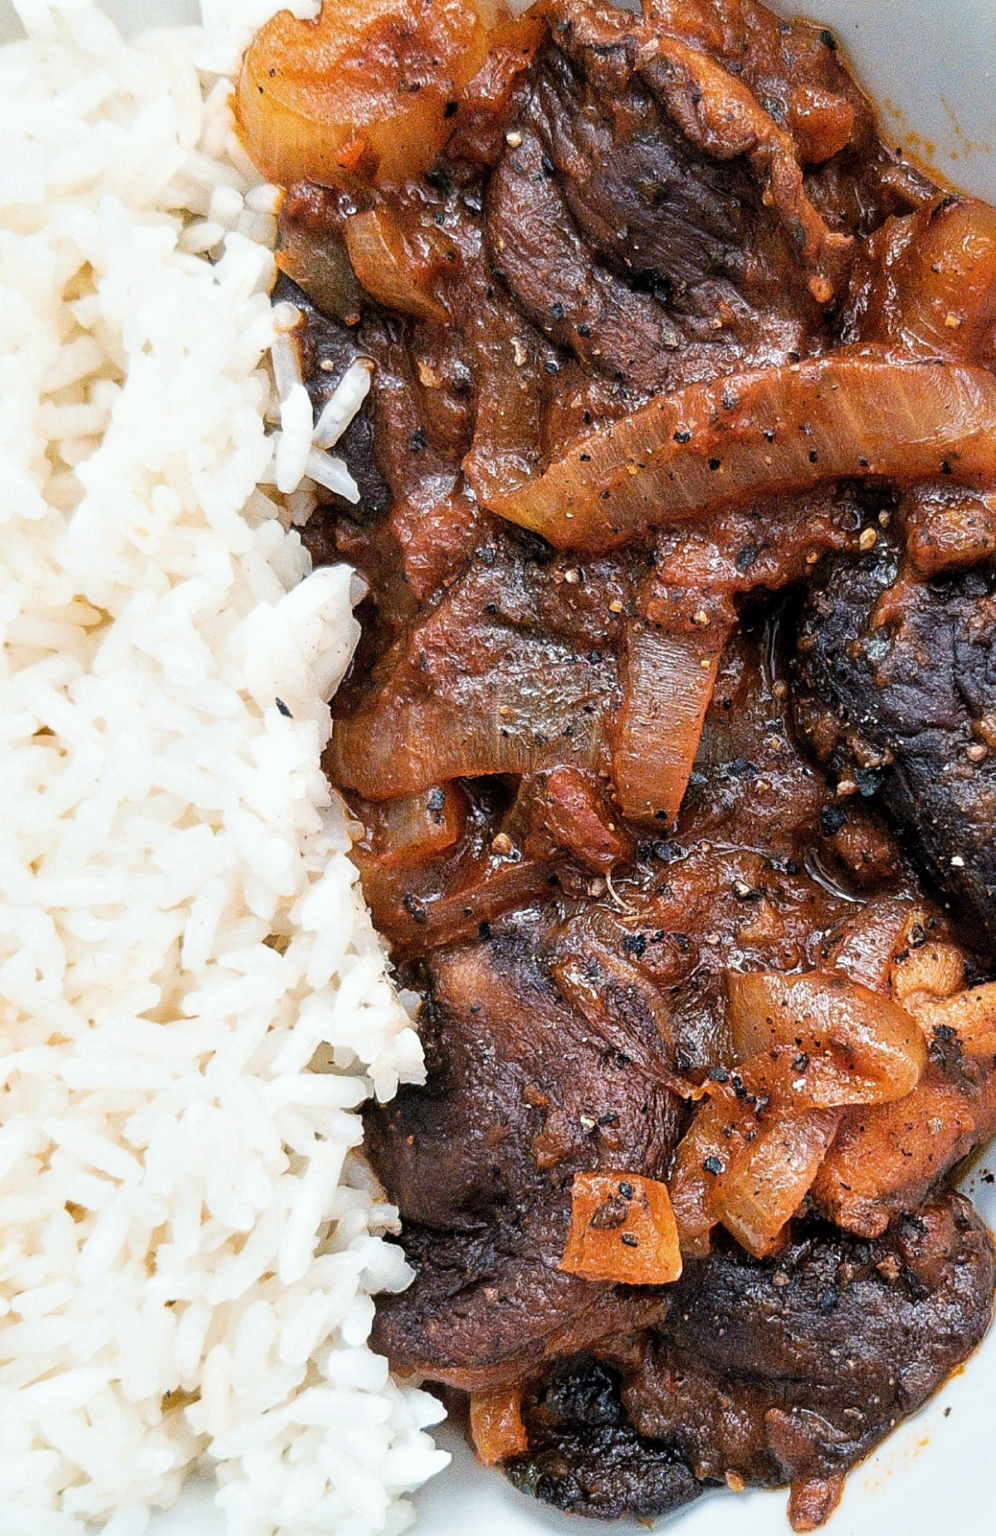 Stewed mushrooms with onion with a side of rice.